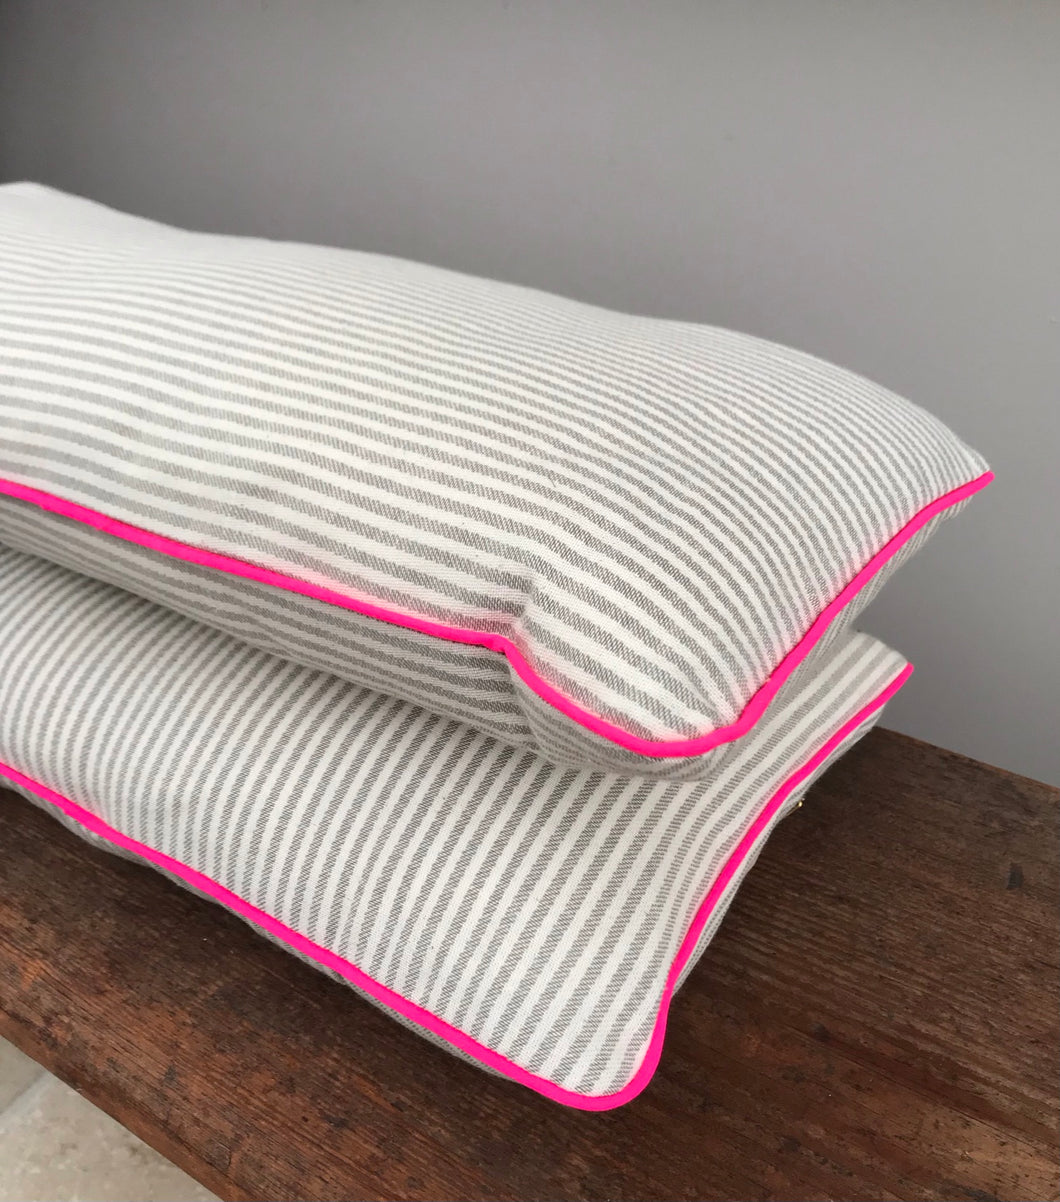 Percy and Dottie longer oblong small cushions